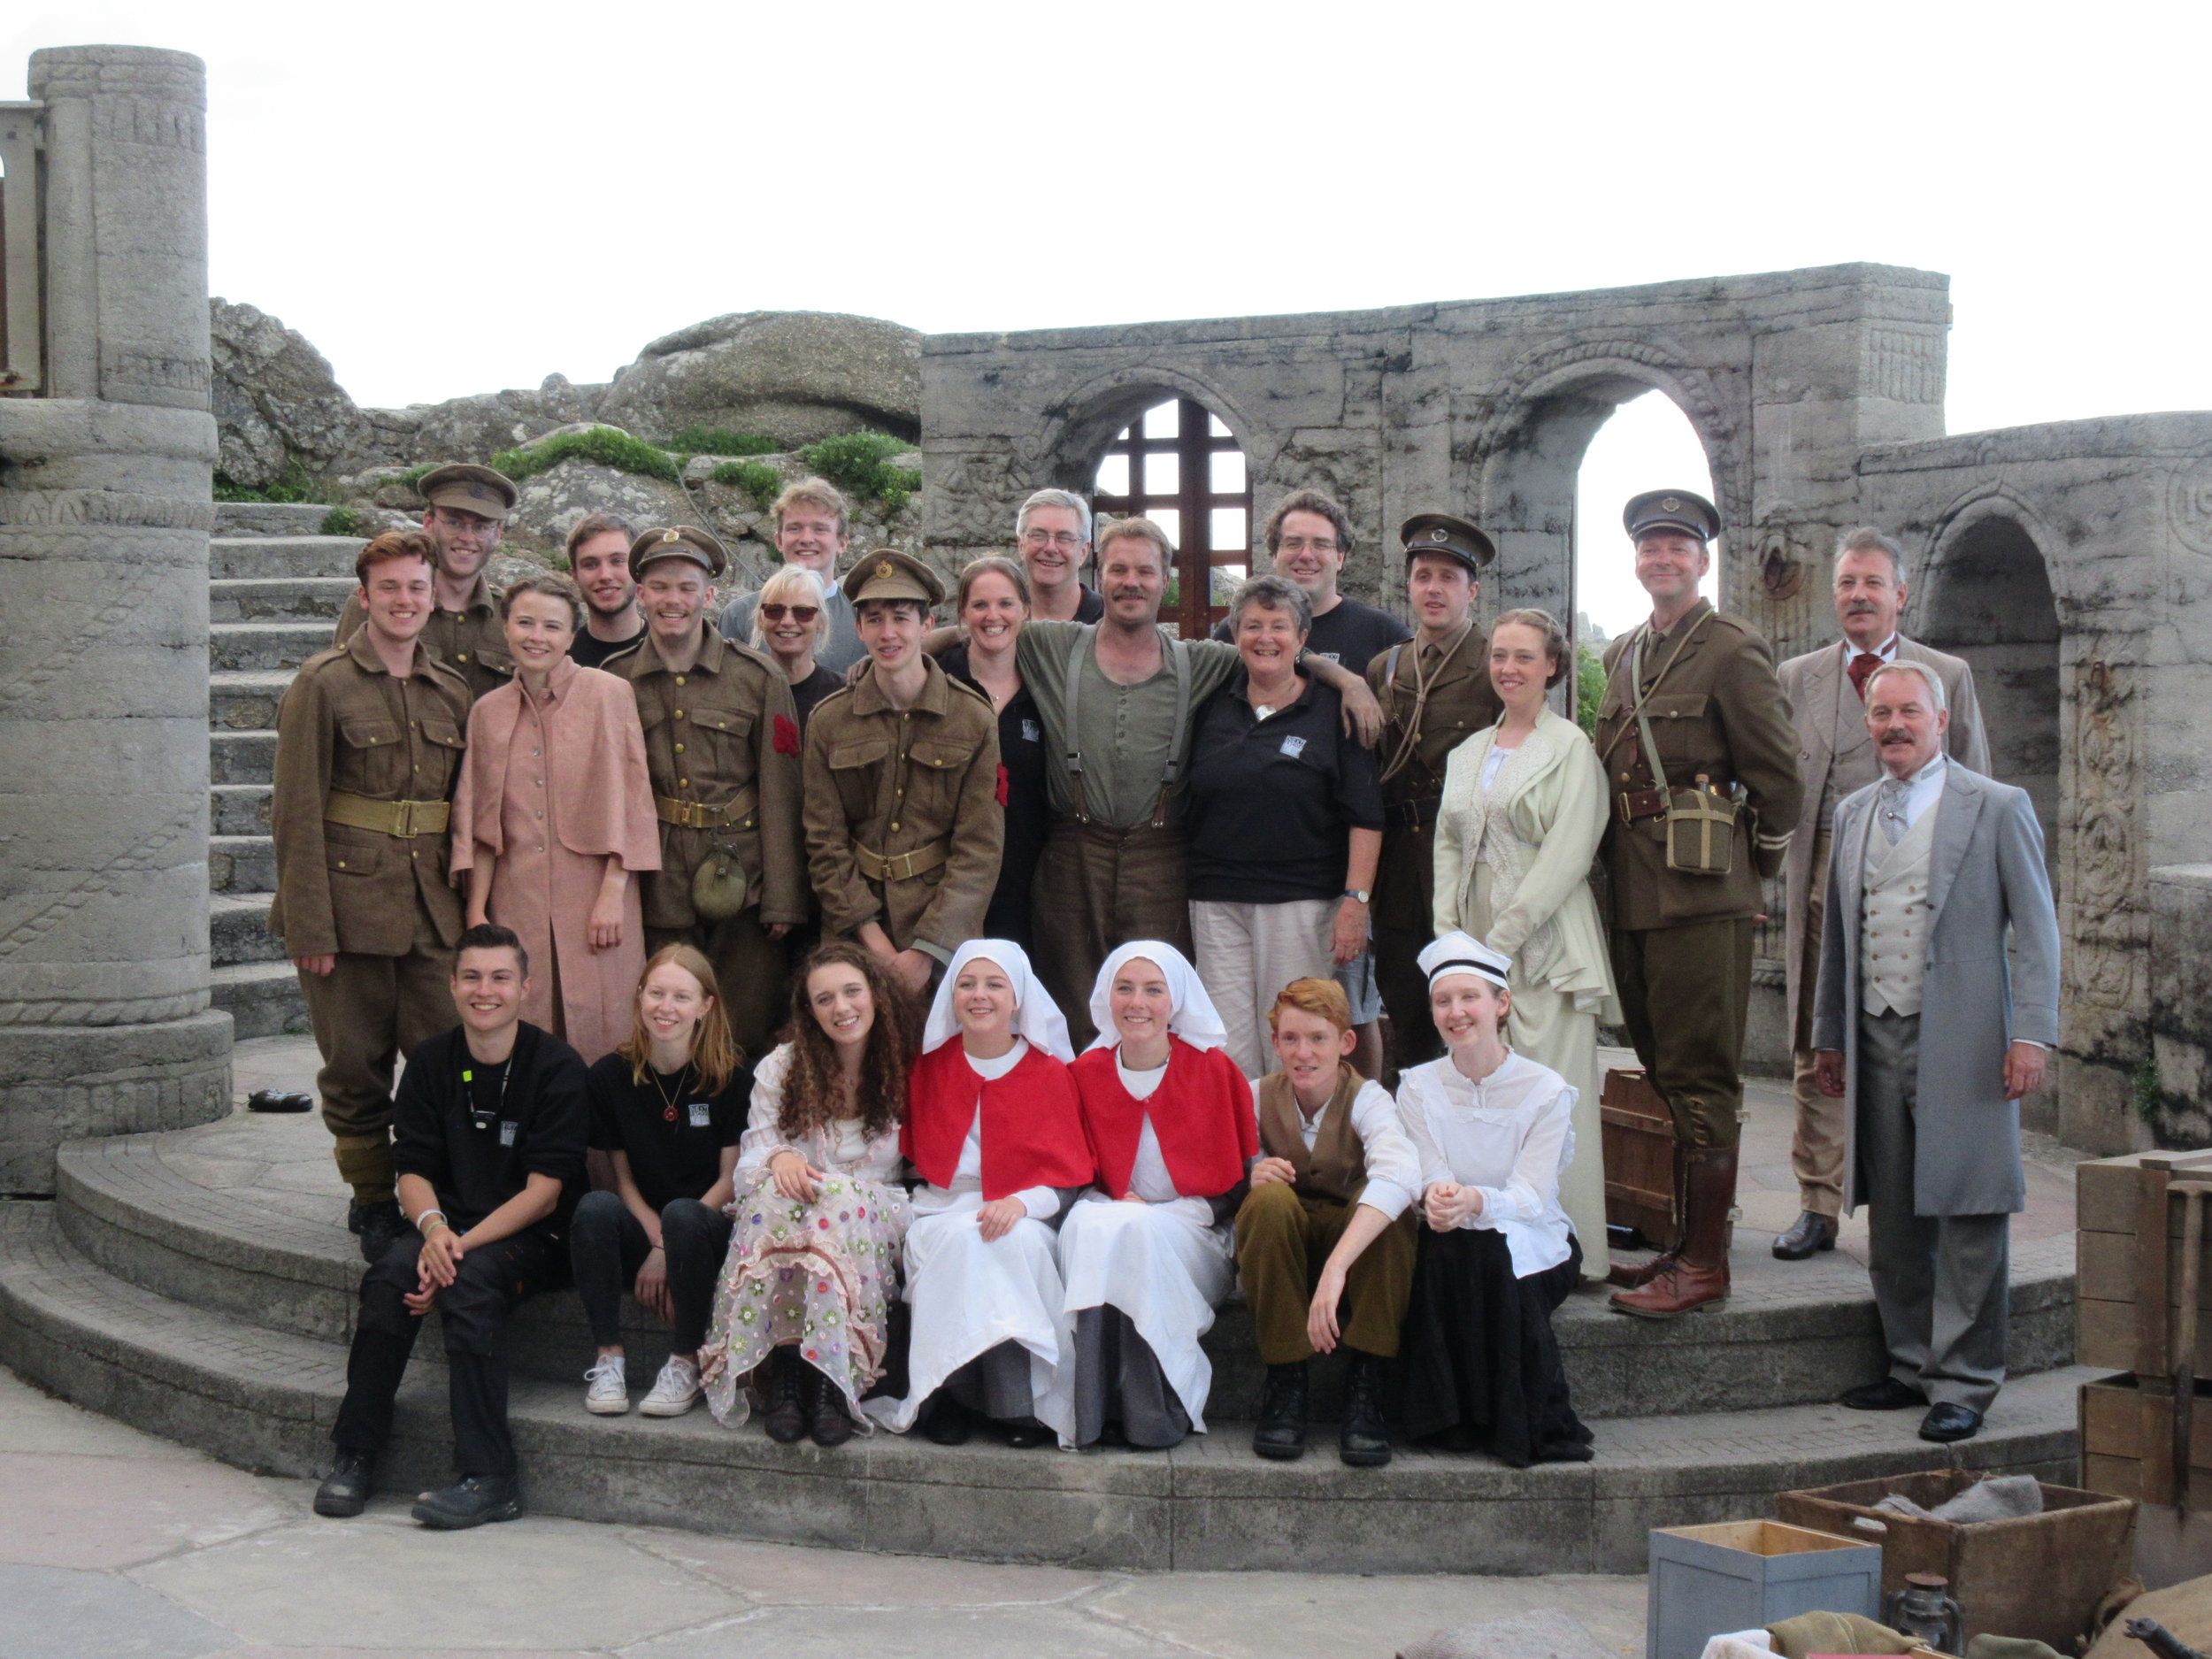 The cast and crew of Birdsong (2017)